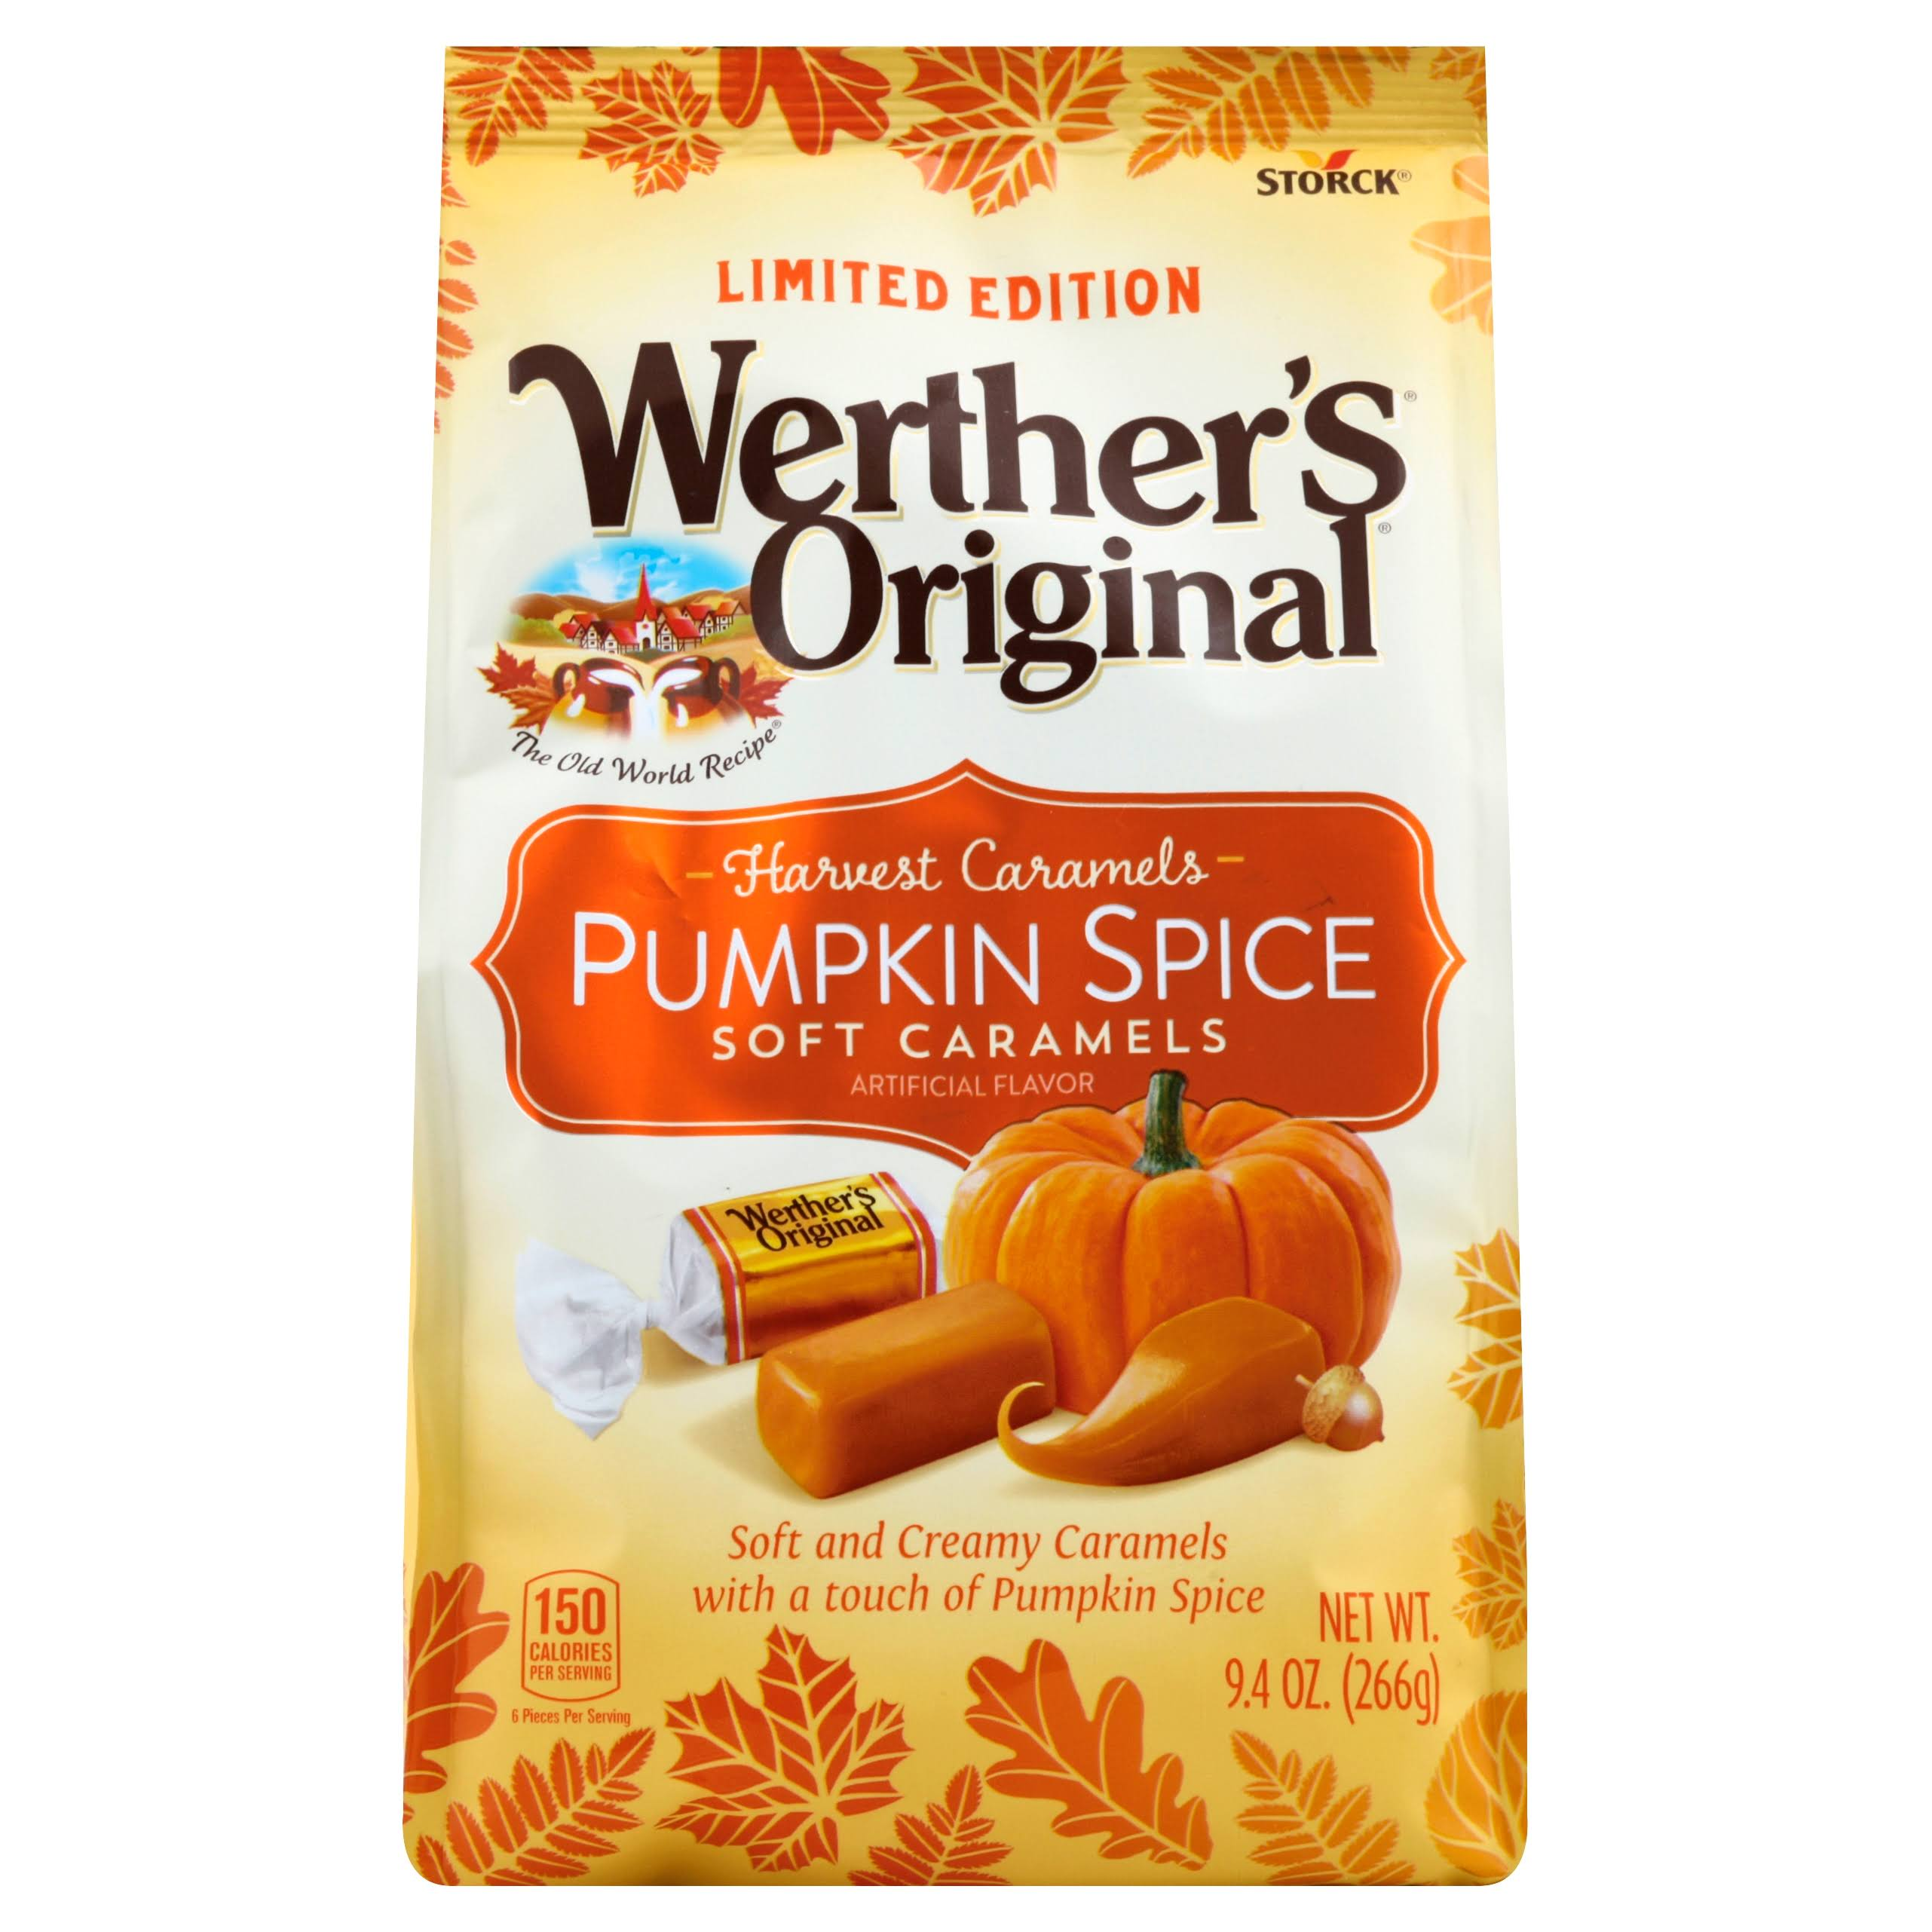 Werther's Original Pumpkin Spice Soft Caramels Candy - 9.4oz